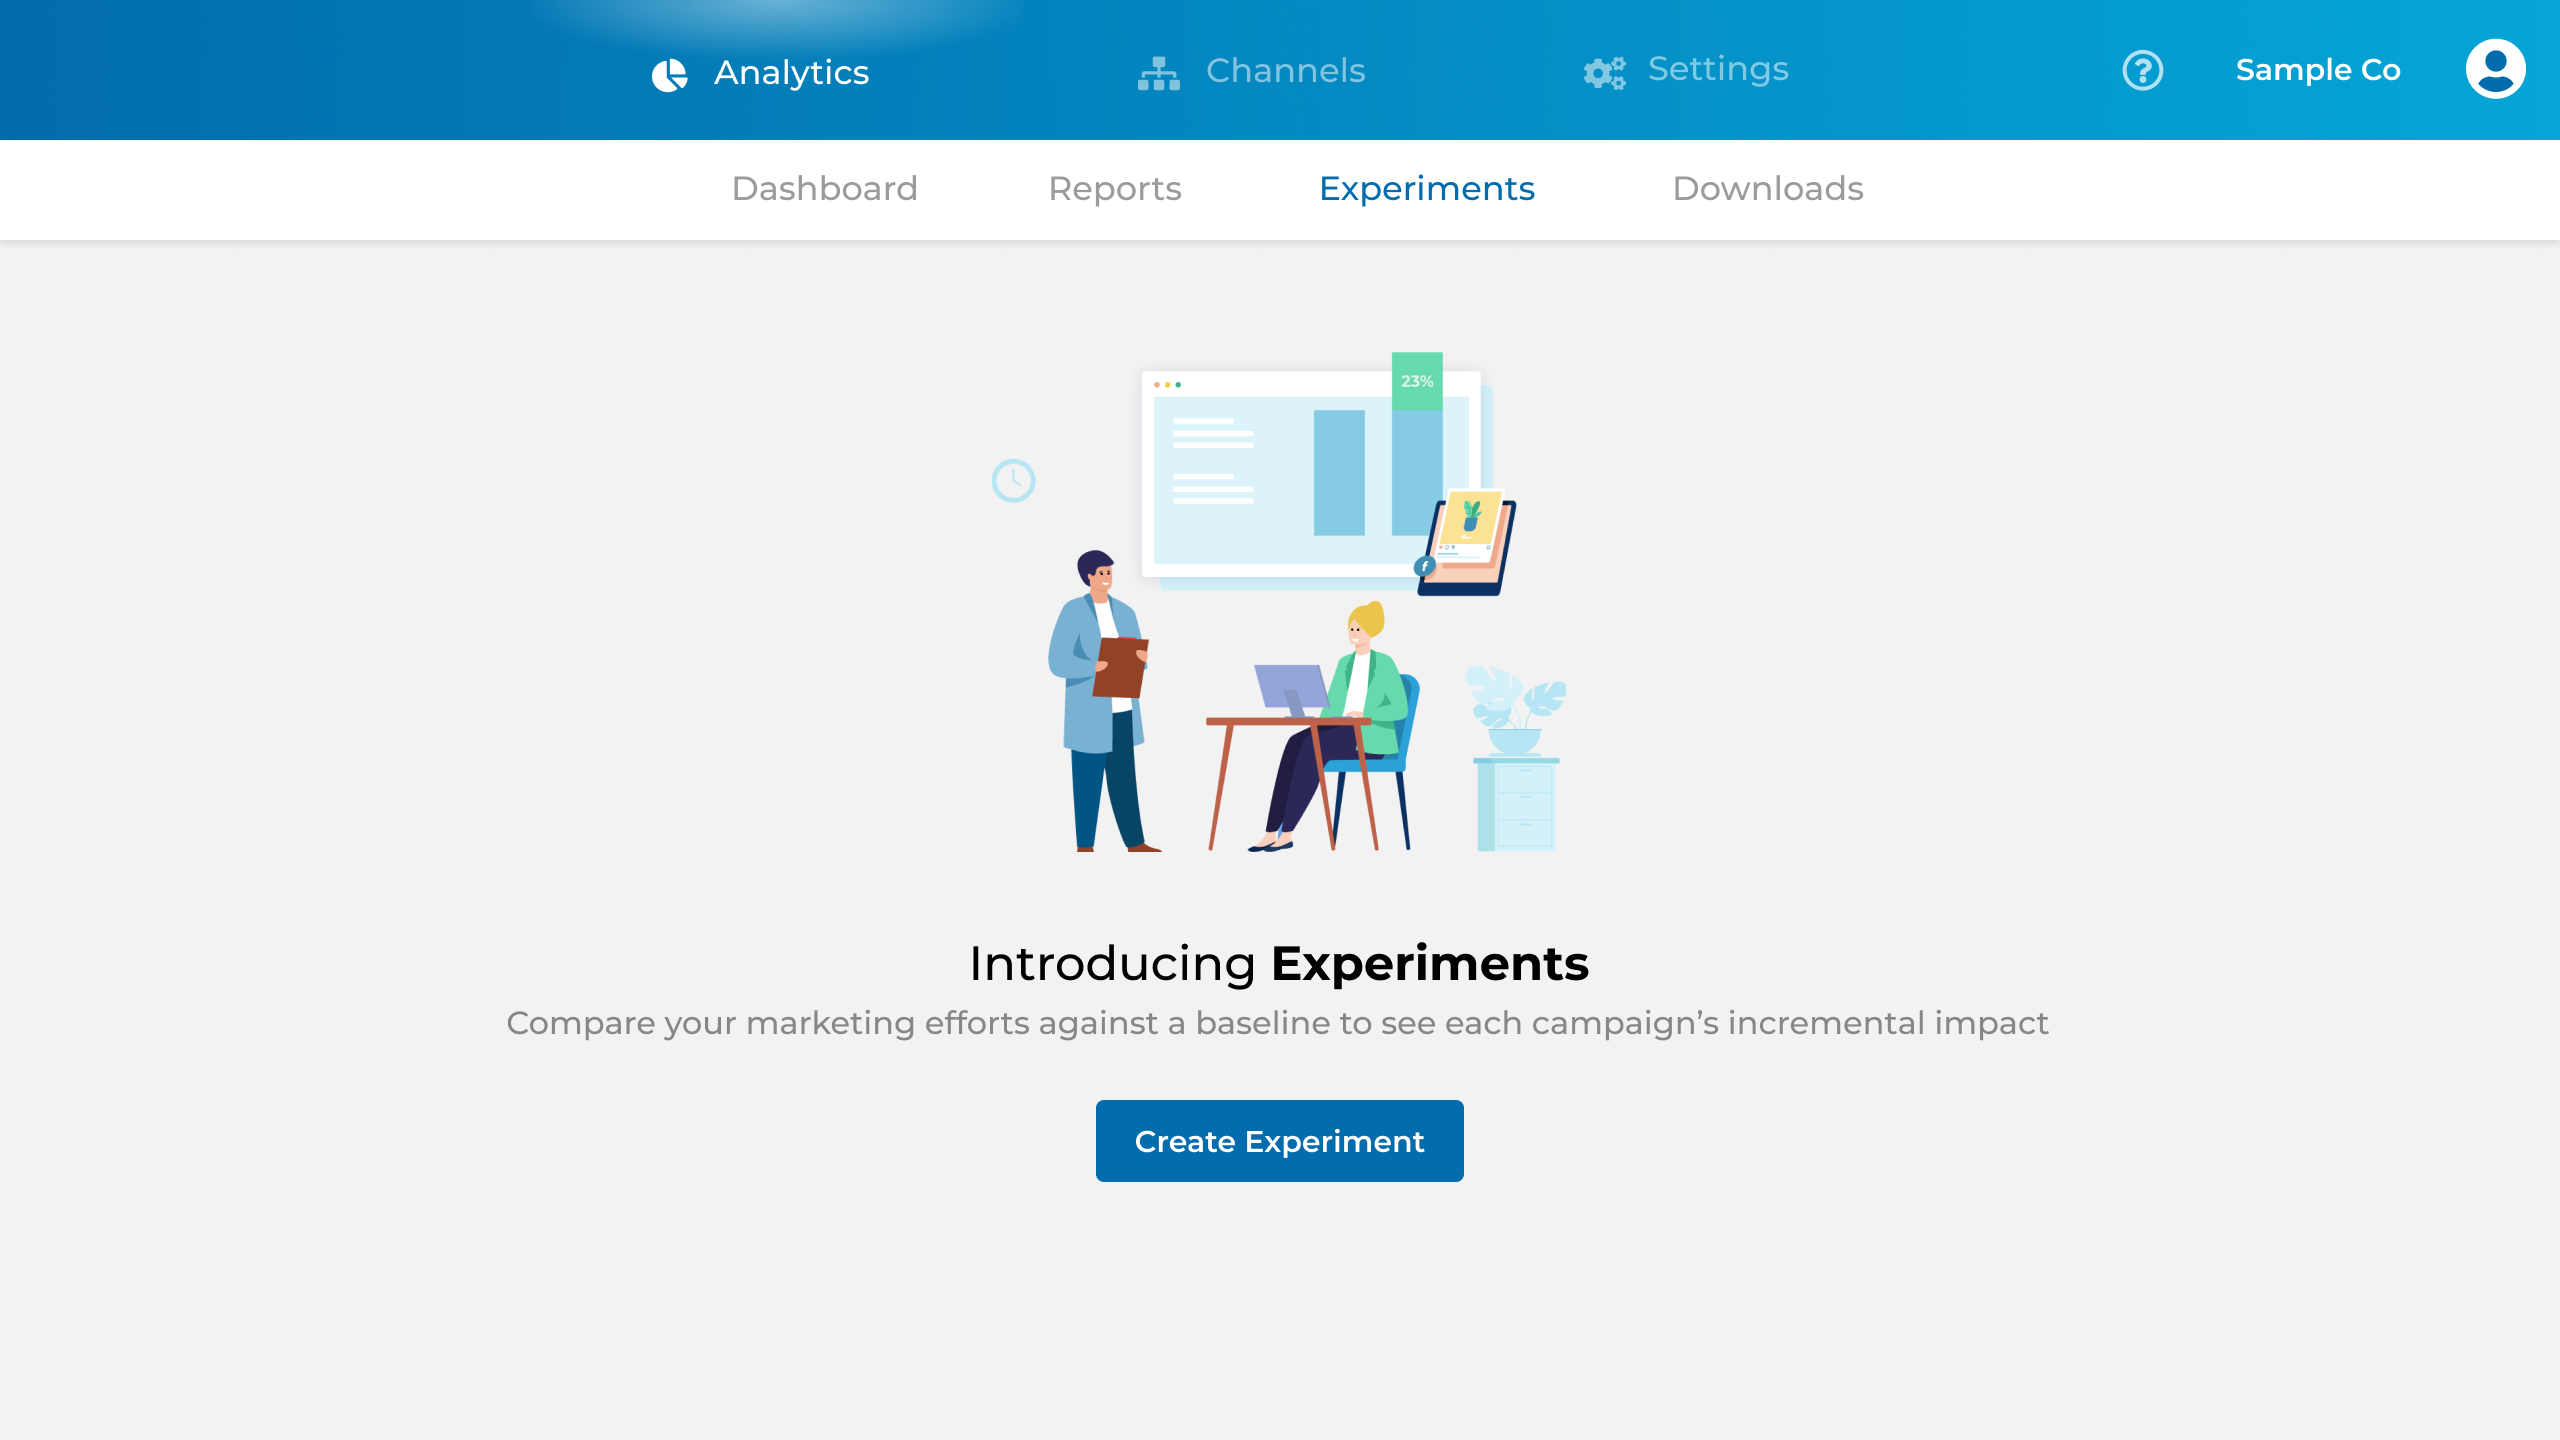 Introducing Experiments dashboard